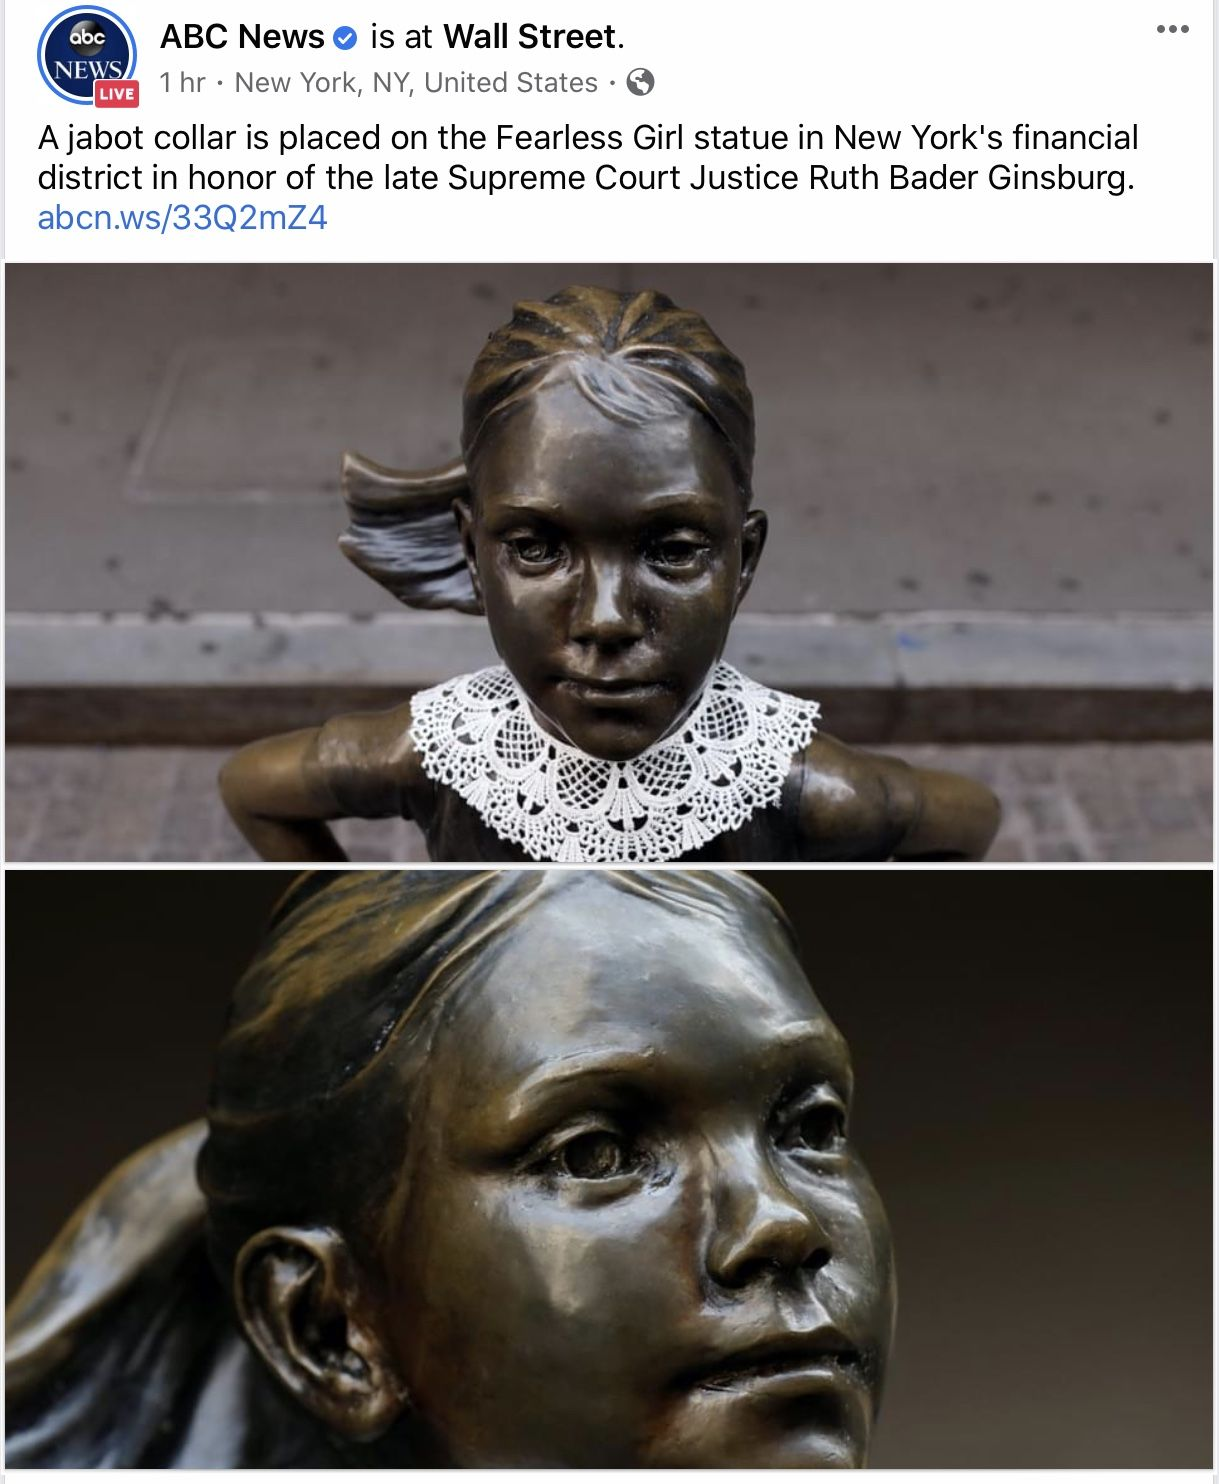 A Jabot Collar Is Placed On The Fearless Girl Statue In New York S Financial District In Honor Of The Late Supreme Co Fearless Girl Statue Statue Buddha Statue